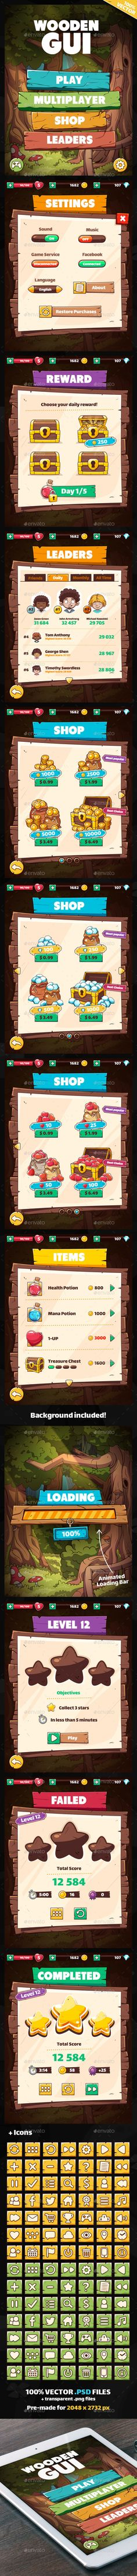 Wooden GUI for Mobile Game — Photoshop PSD #window #ui • Download ➝ https://graphicriver.net/item/wooden-gui-for-mobile-game/20009639?ref=pxcr